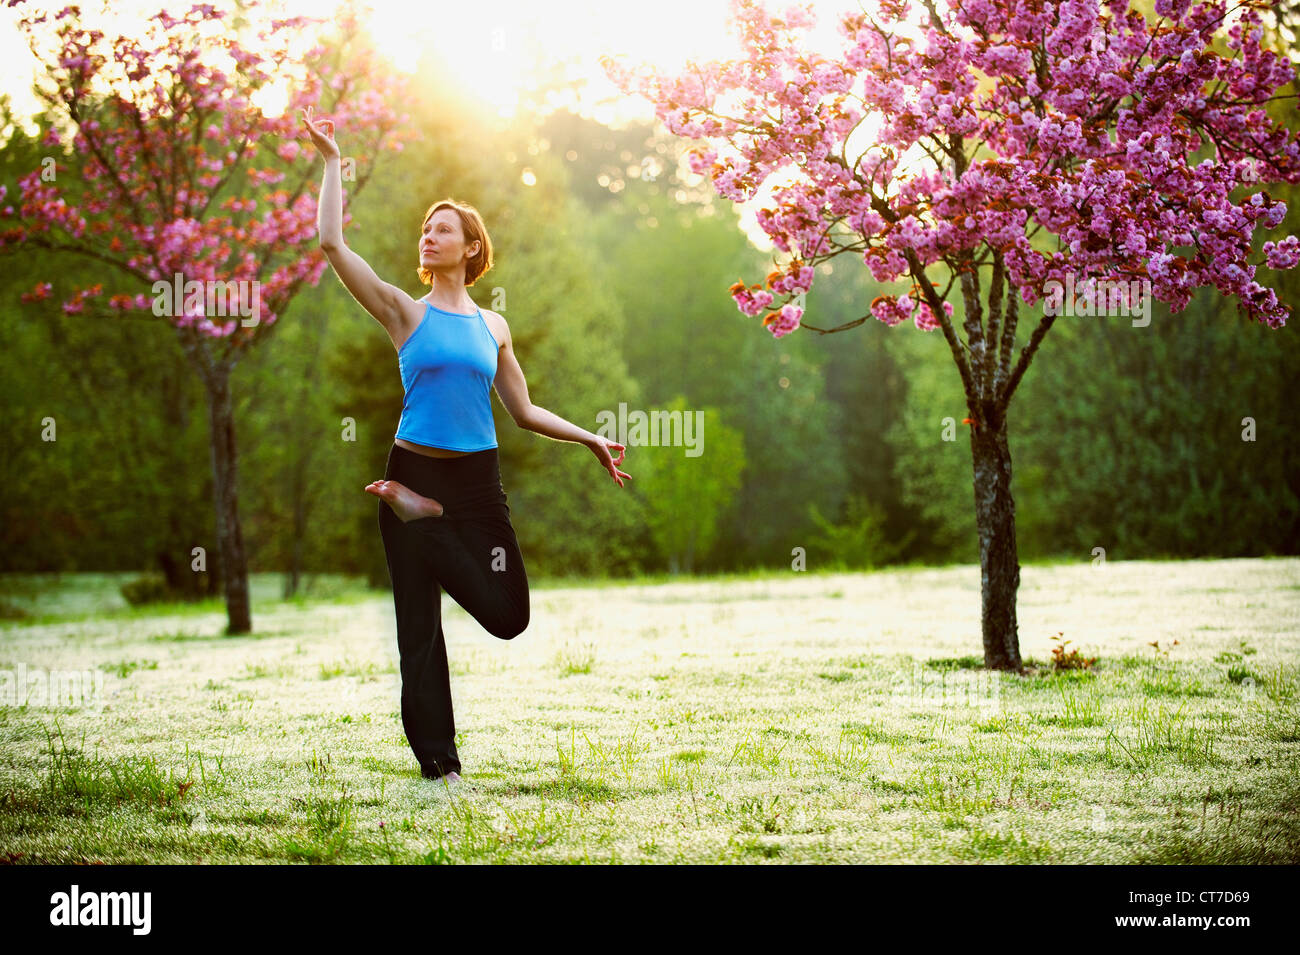 Woman in yoga pose in park - Stock Image